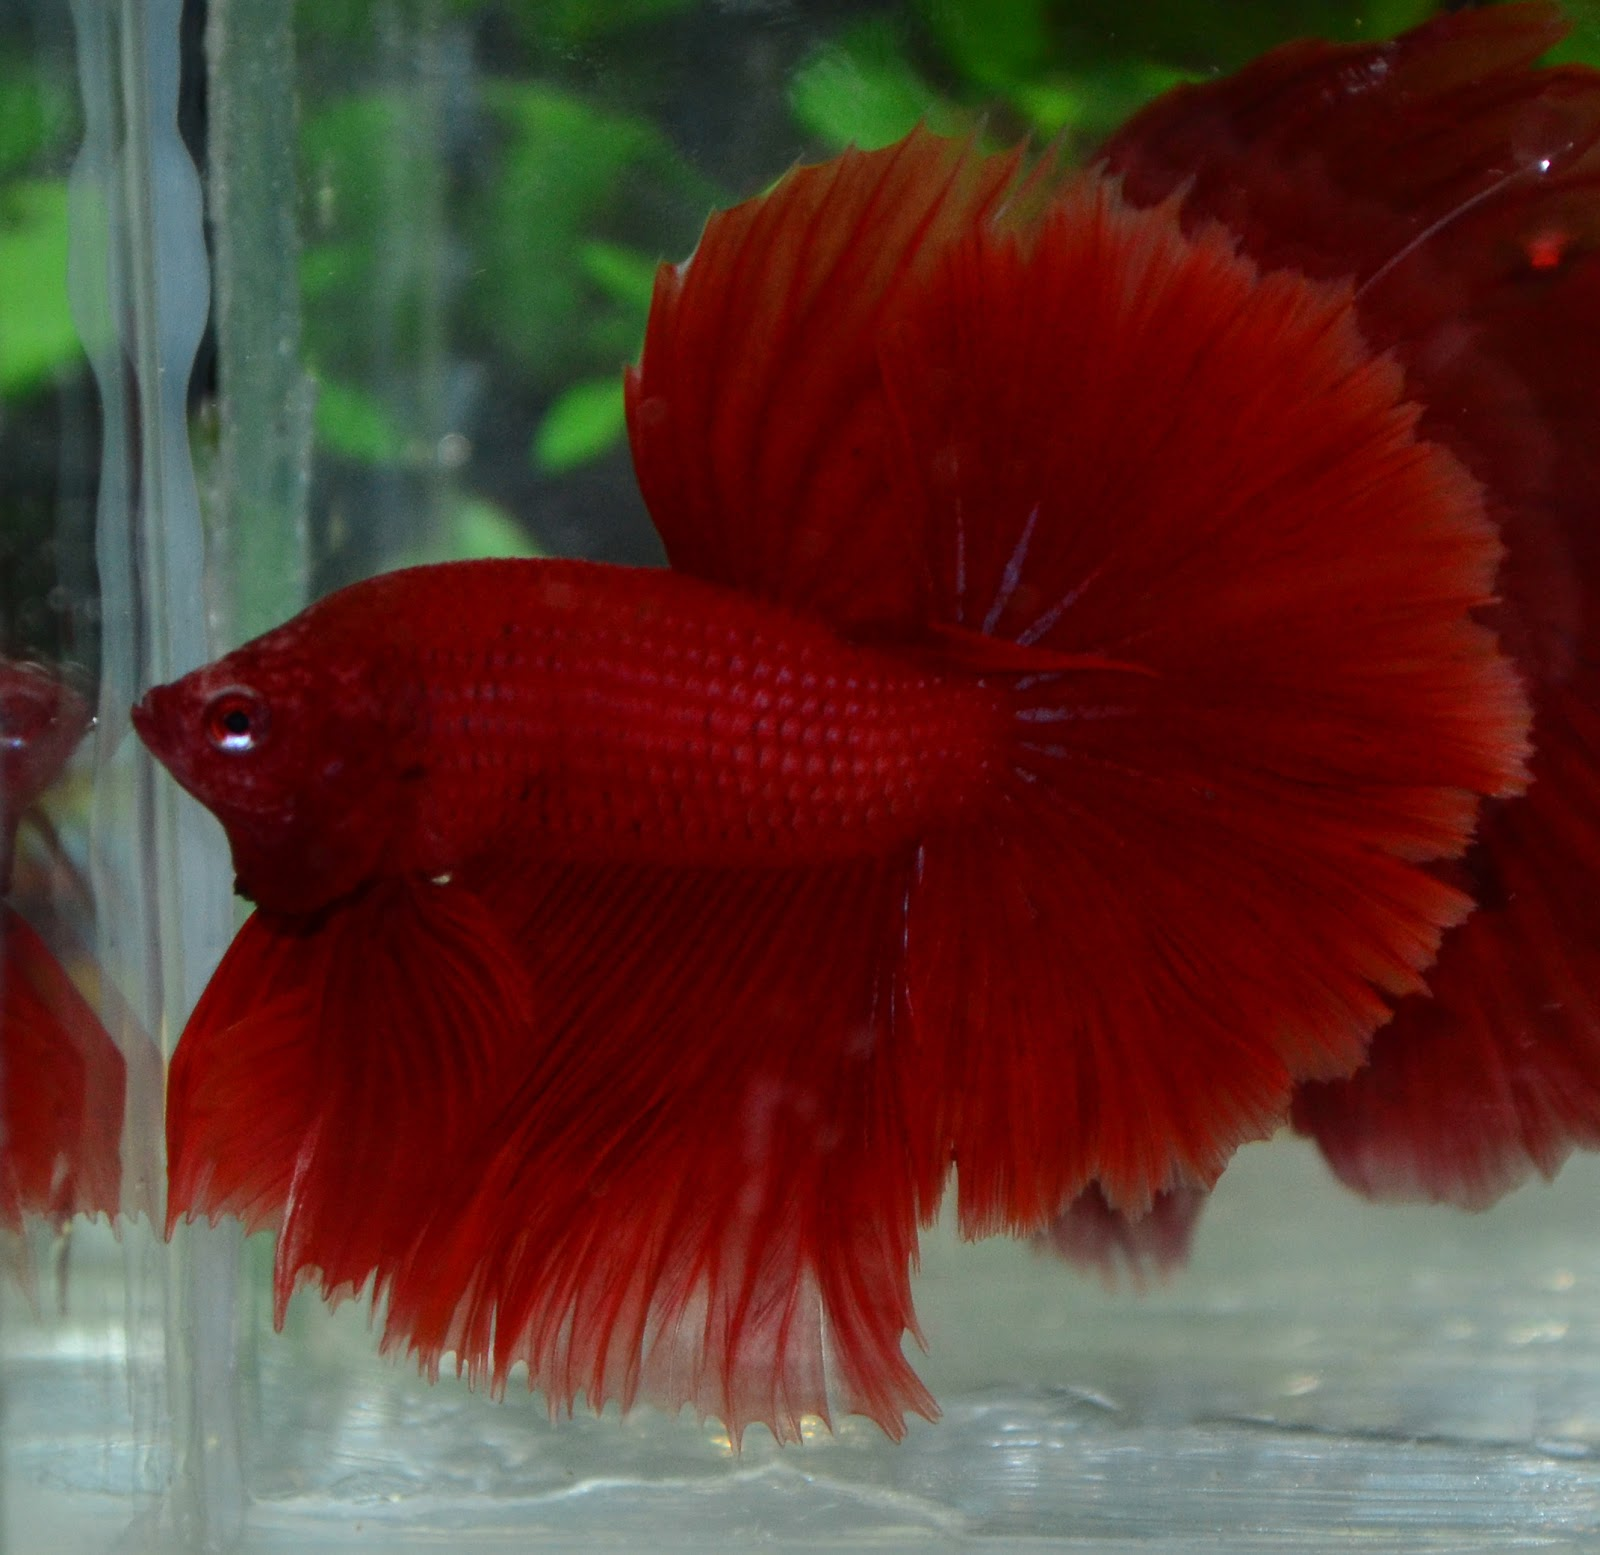 This page shows some of the types of Male Betta Fish for sale at our online retail Tropical Fish store Click here for more about buying pet